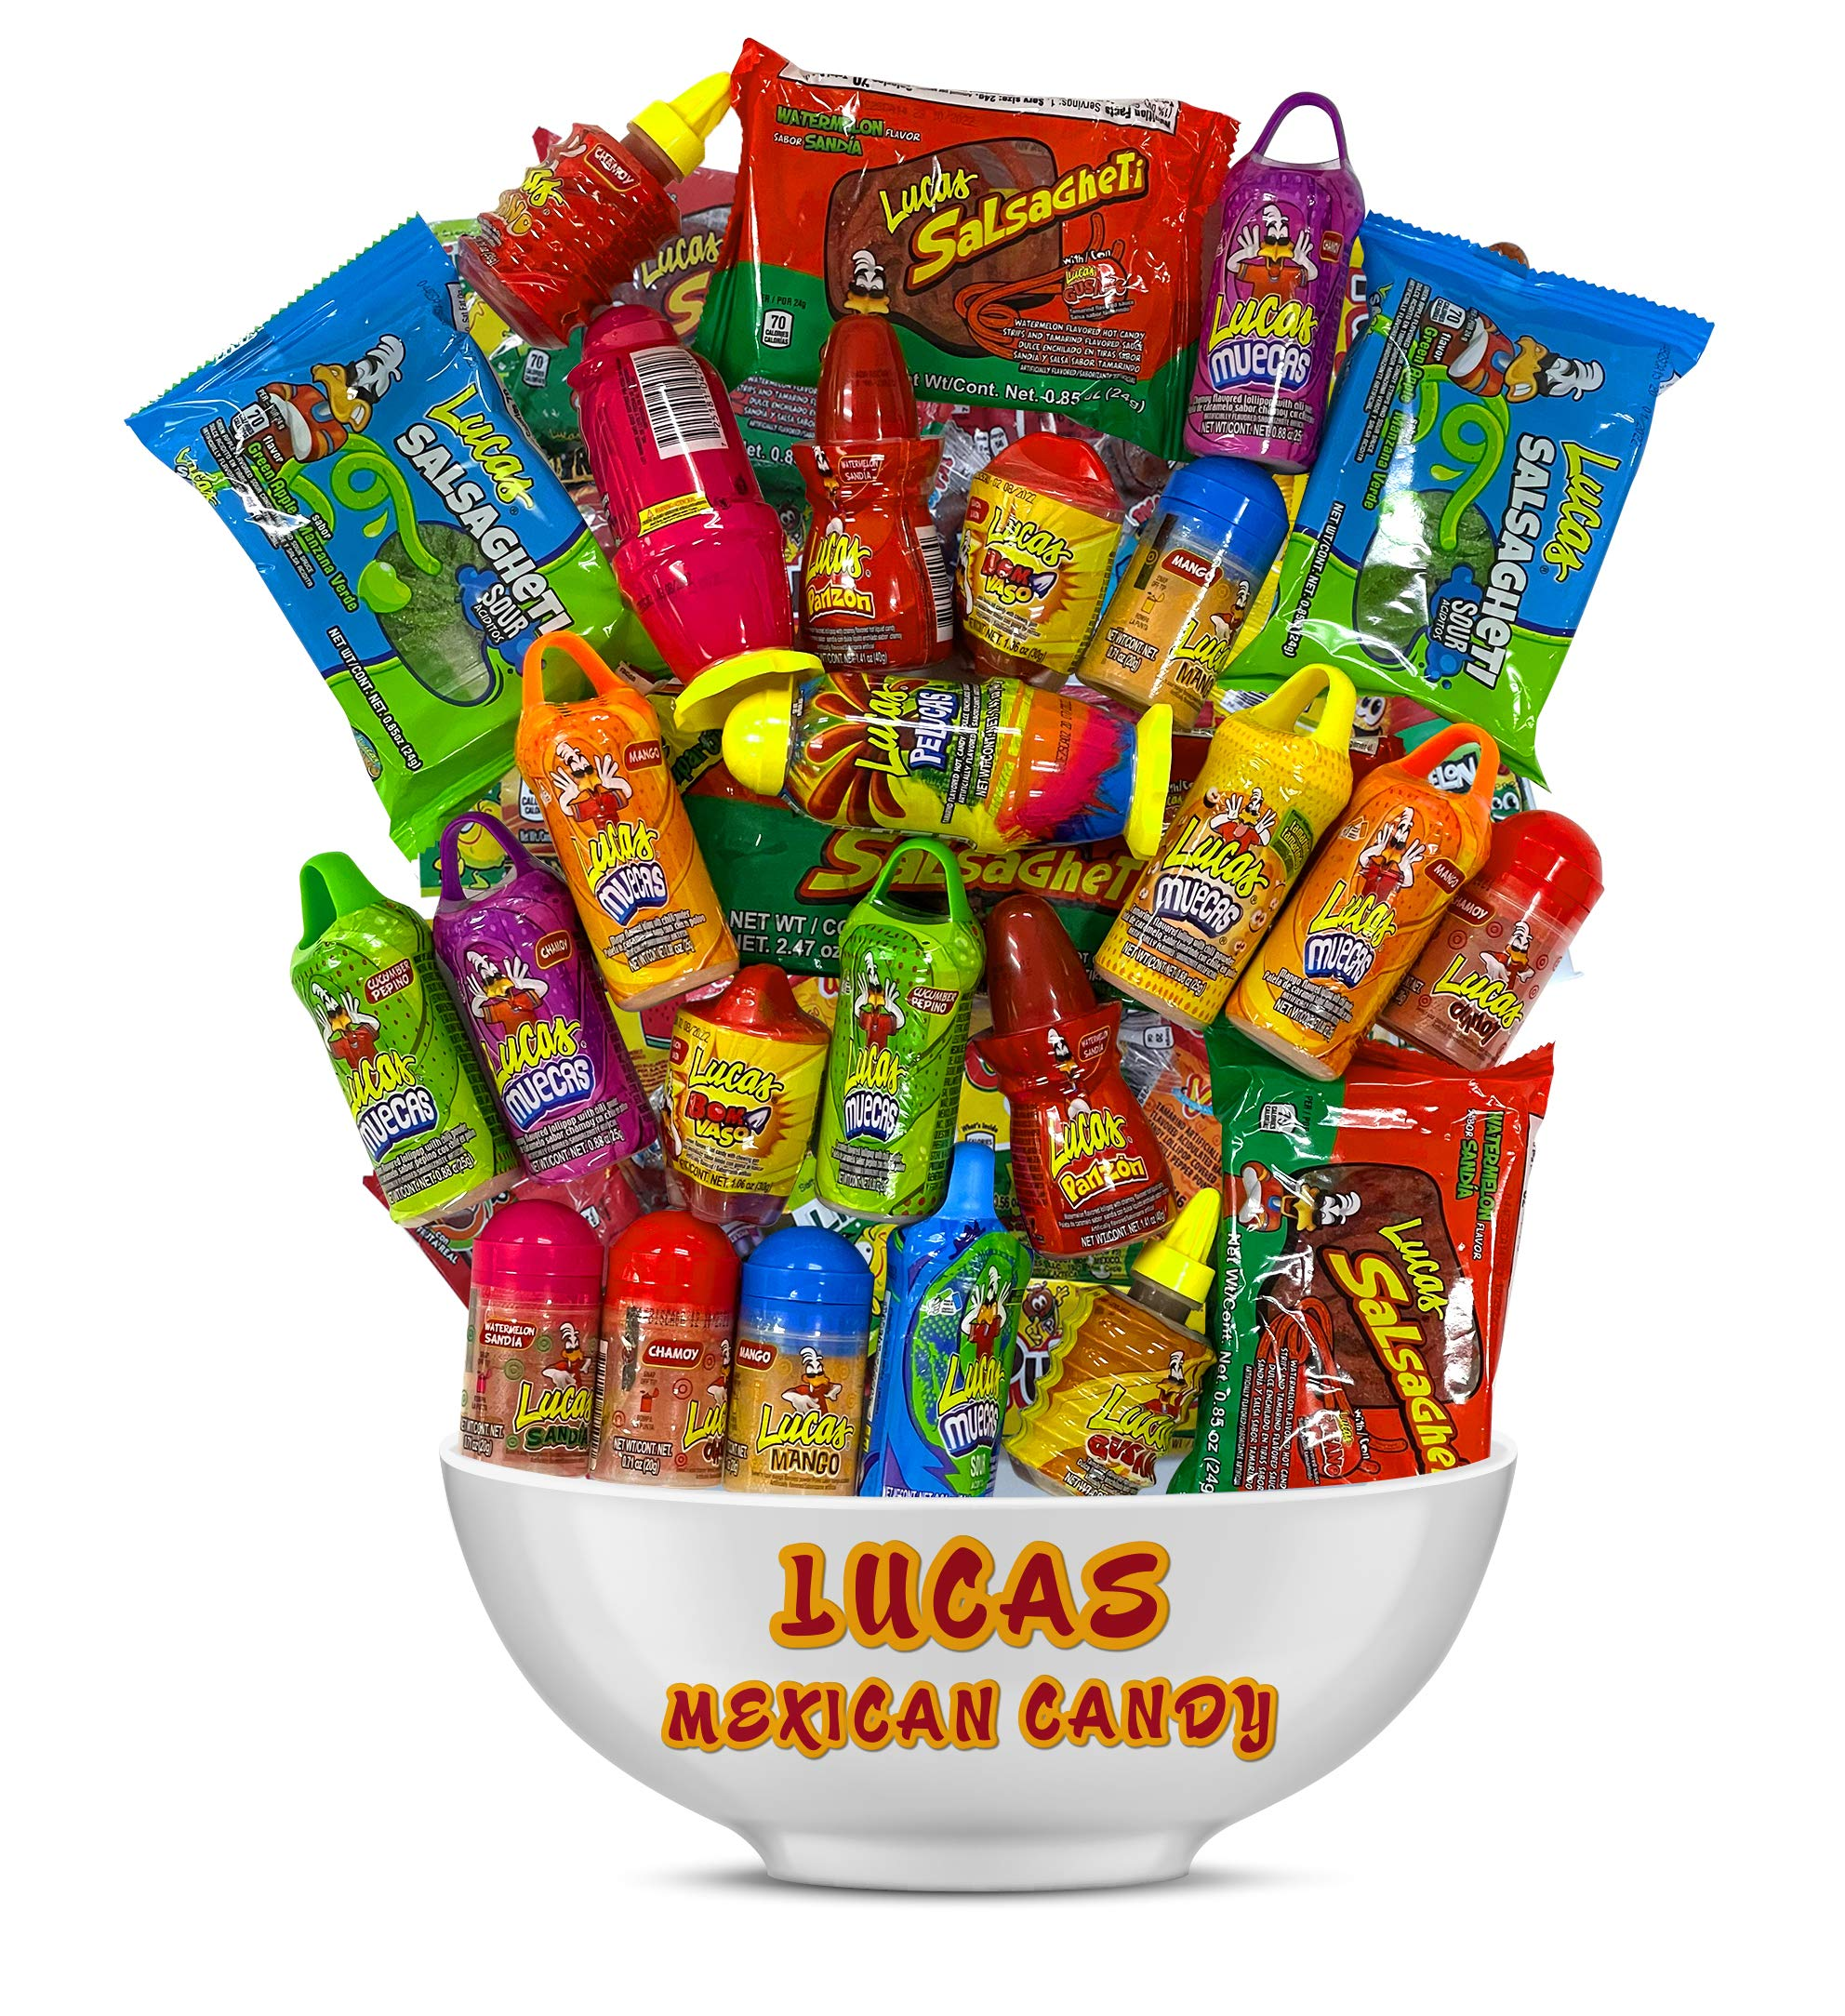 Lucas Mexican Candy Mix (20 Count) Variety of Sour, Sweet, Spicy, Include Pelucas, Baby Powder, Muecas Chamoy, Watermelon, Mango, Gusano, Salsagheti, Bomvaso, Skwinkles Rellenos by Look-On